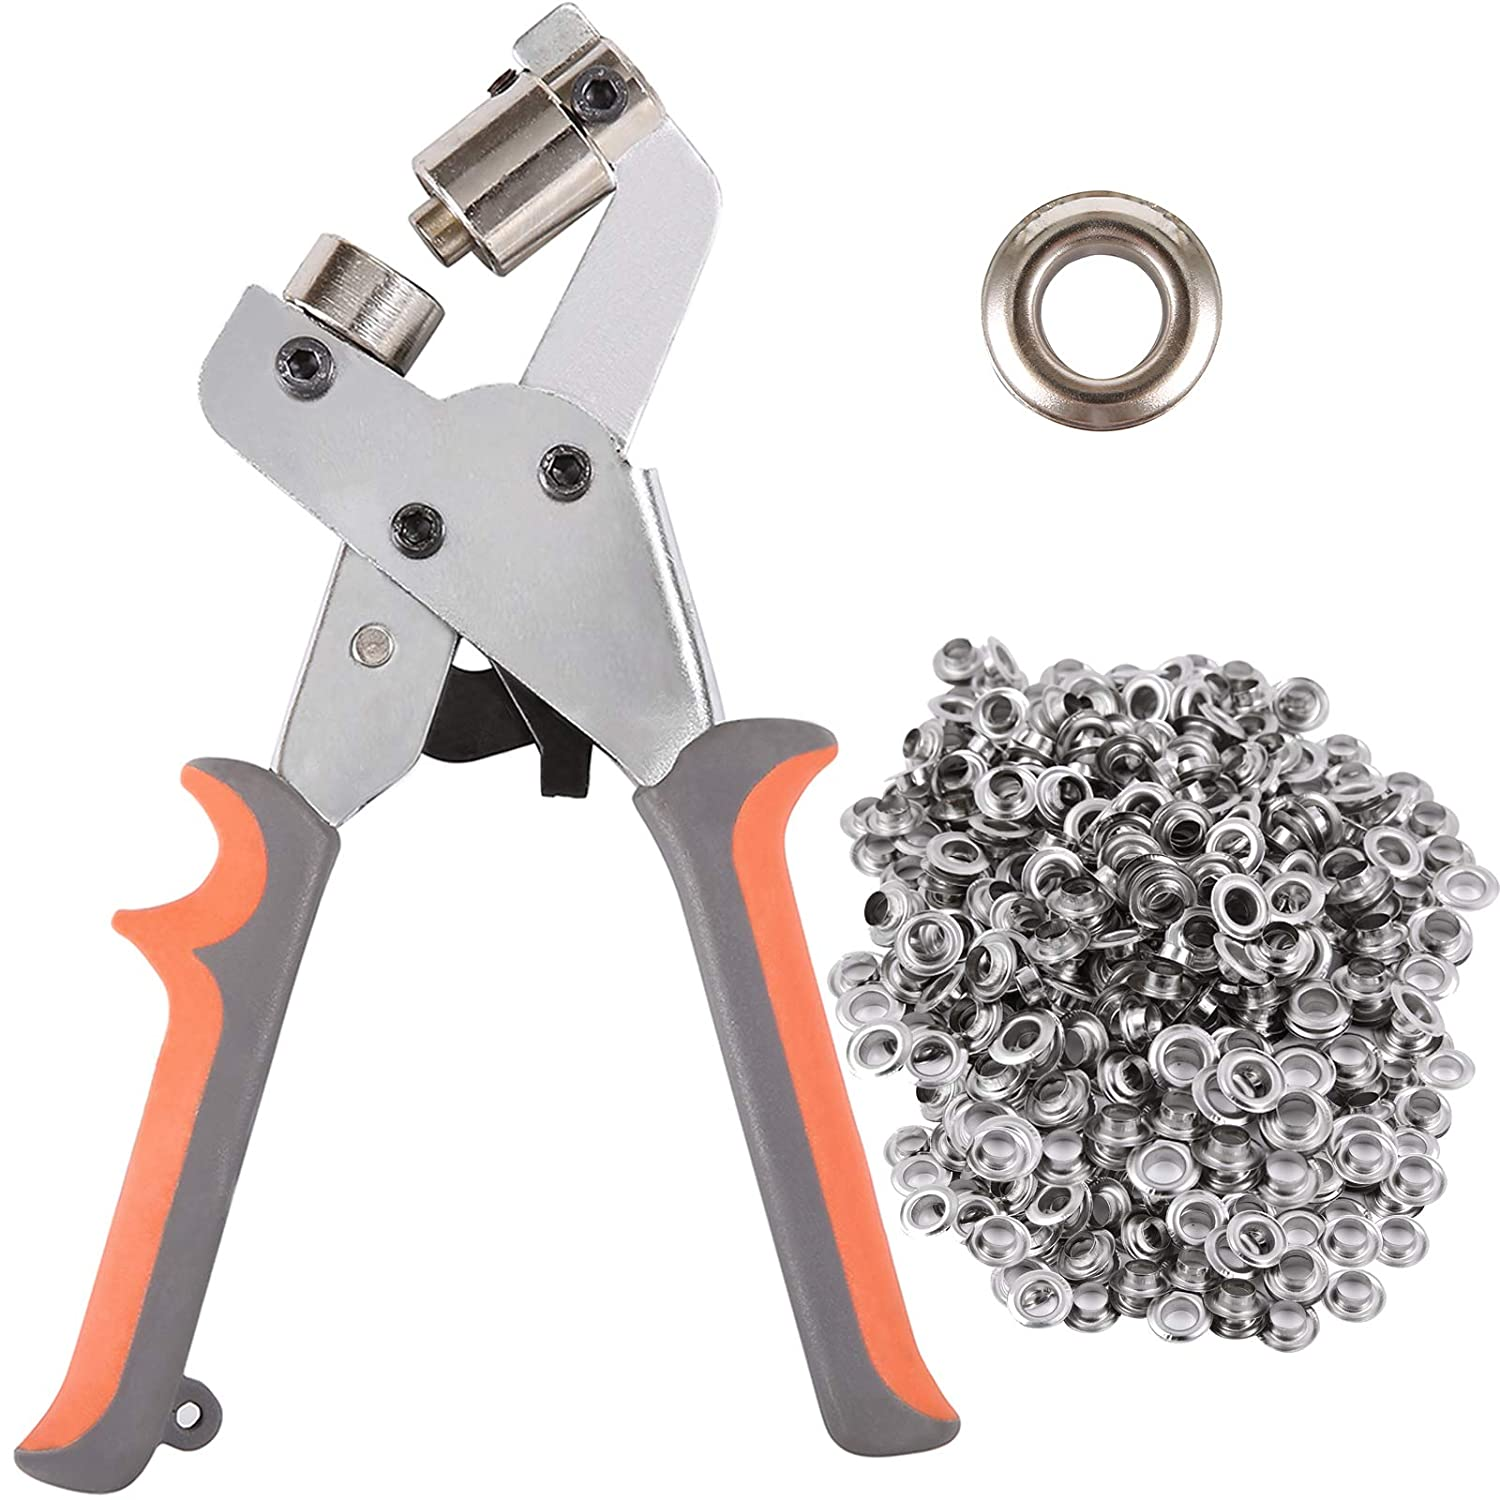 Handheld Grommets 3//8 InchPunching  Hole Pliers Press+500pcs Silver Grommets